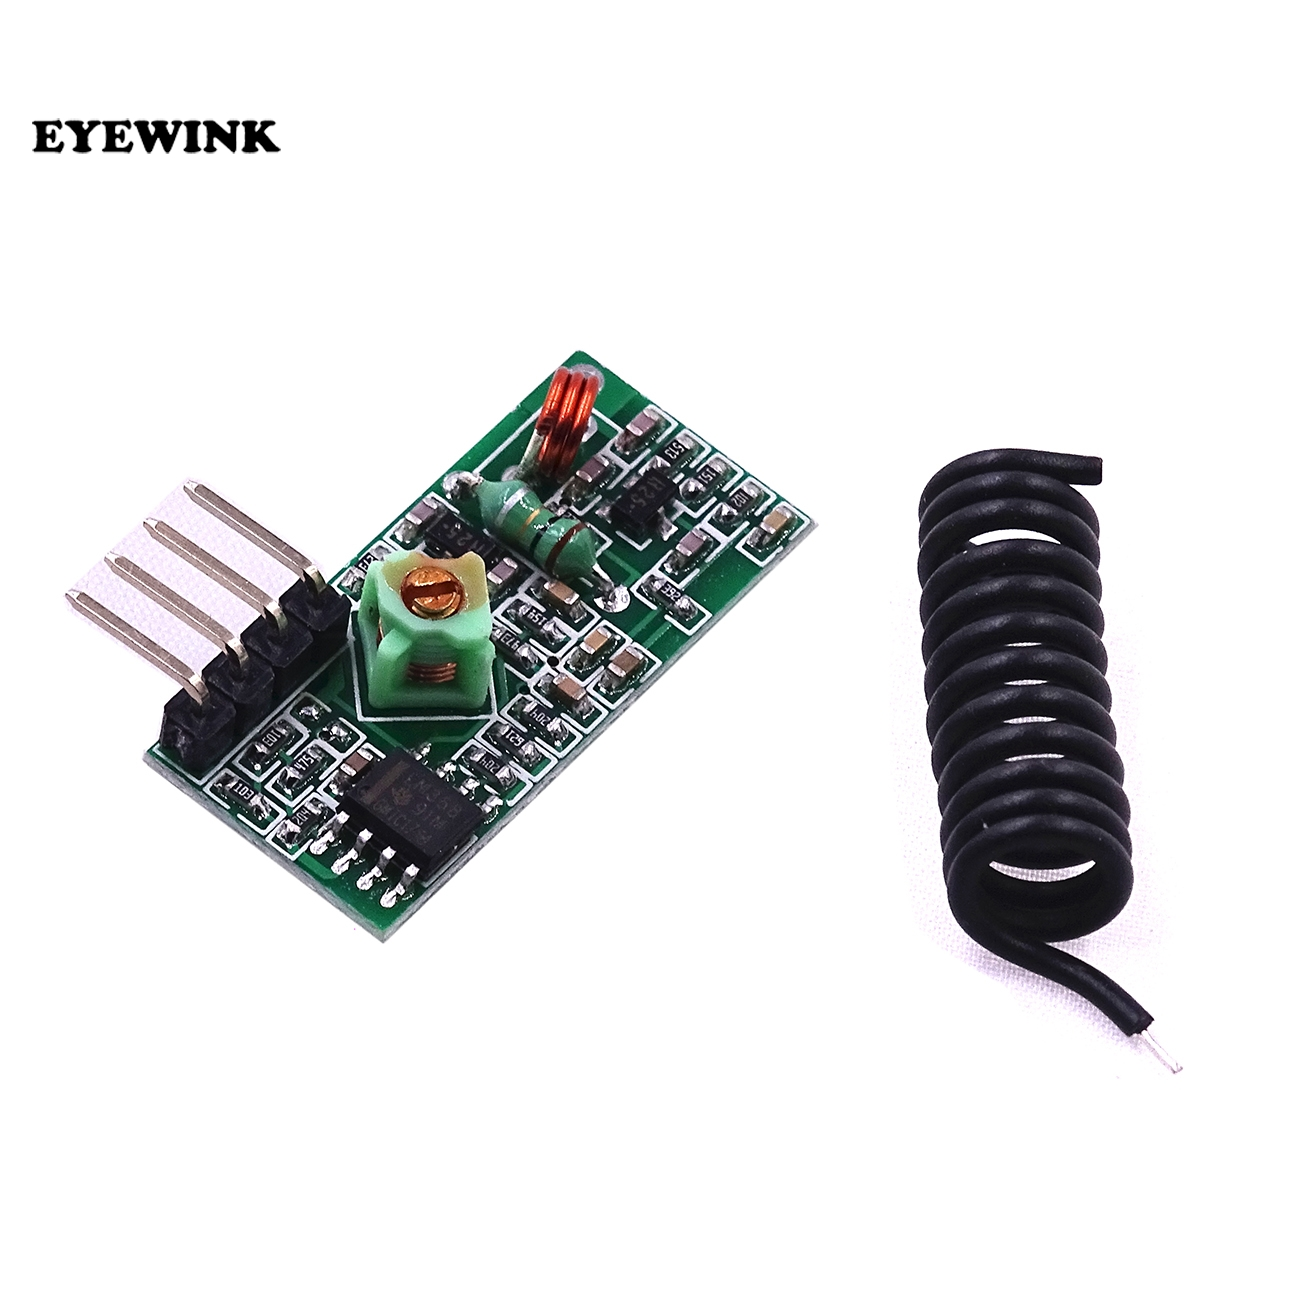 100pcs Lot 315mhz 433mhz High Frequency Amplitude Modulation Super Circuit Regeneration Wireless Receiving Module In Integrated Circuits From Electronic Components